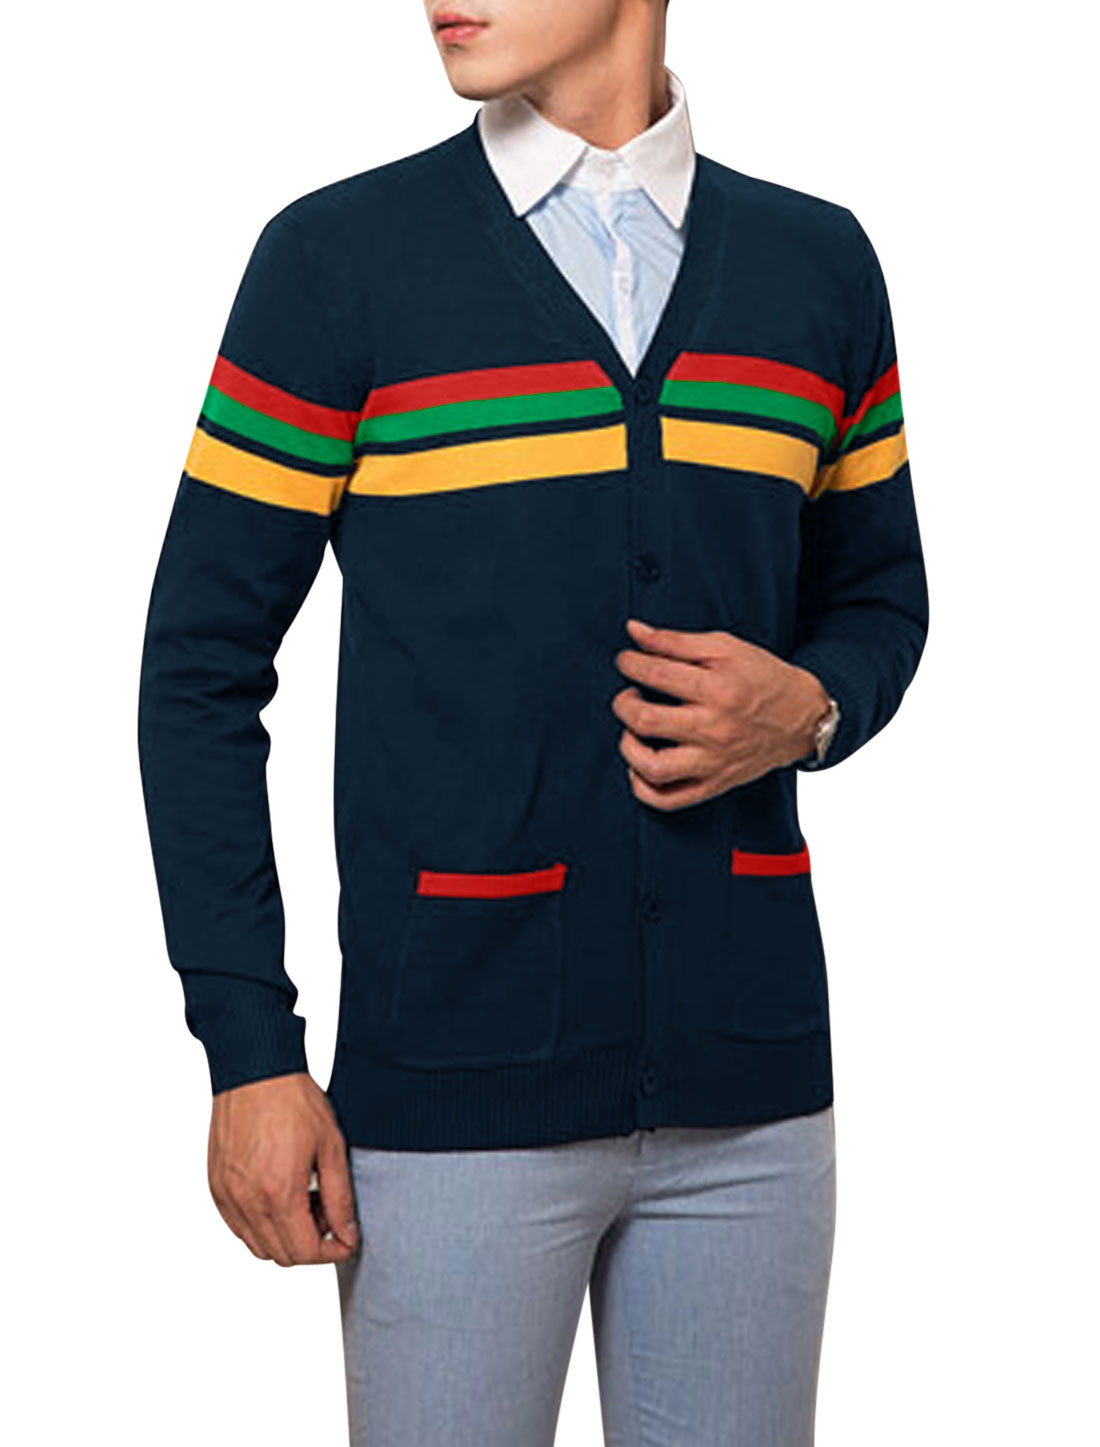 Man Double Pocket Stripes V Neckline Navy Blue Cardigan Sweater M